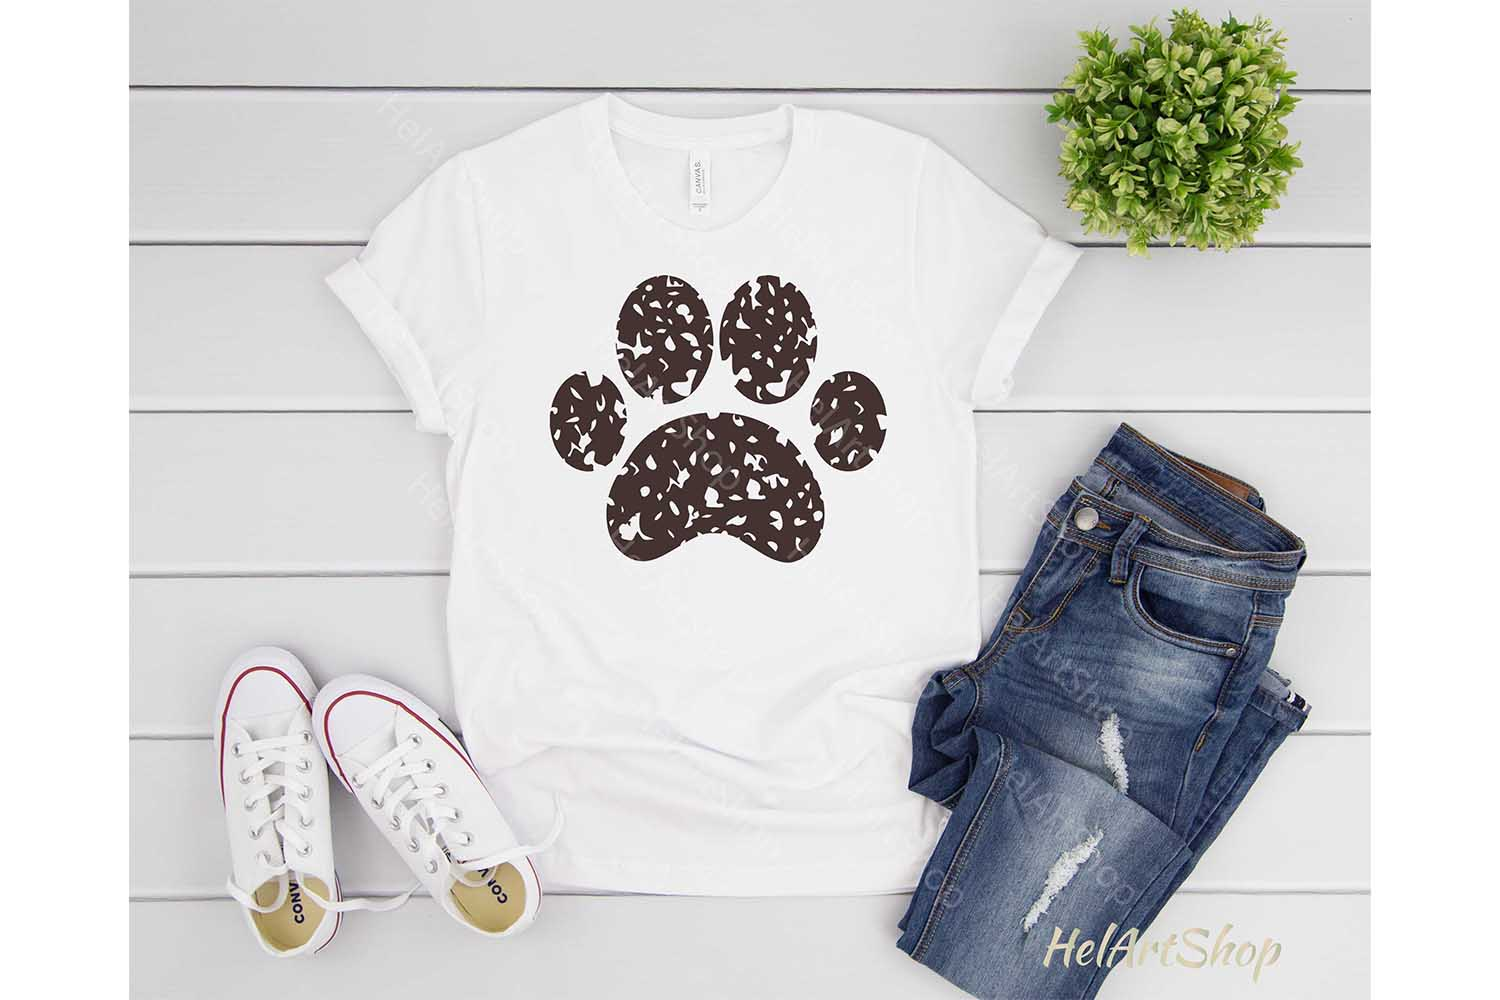 Distressed Paw svg, Dog Paw Svg, Dog Mom svg example image 2